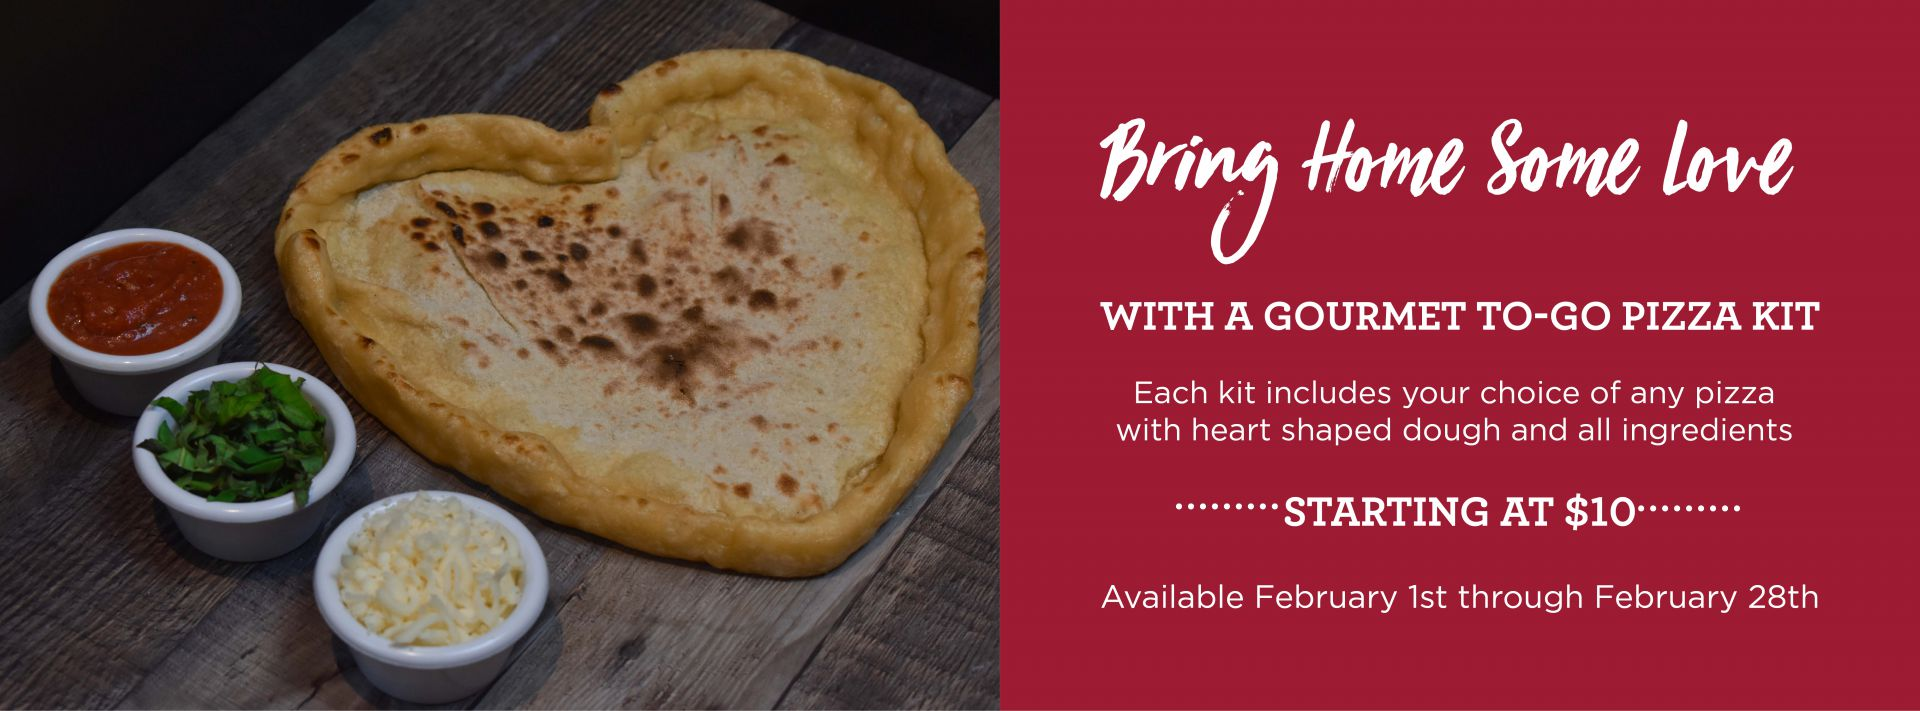 Pizza to-go kit.- 10$ - Feb. 1st through Feb. 28th